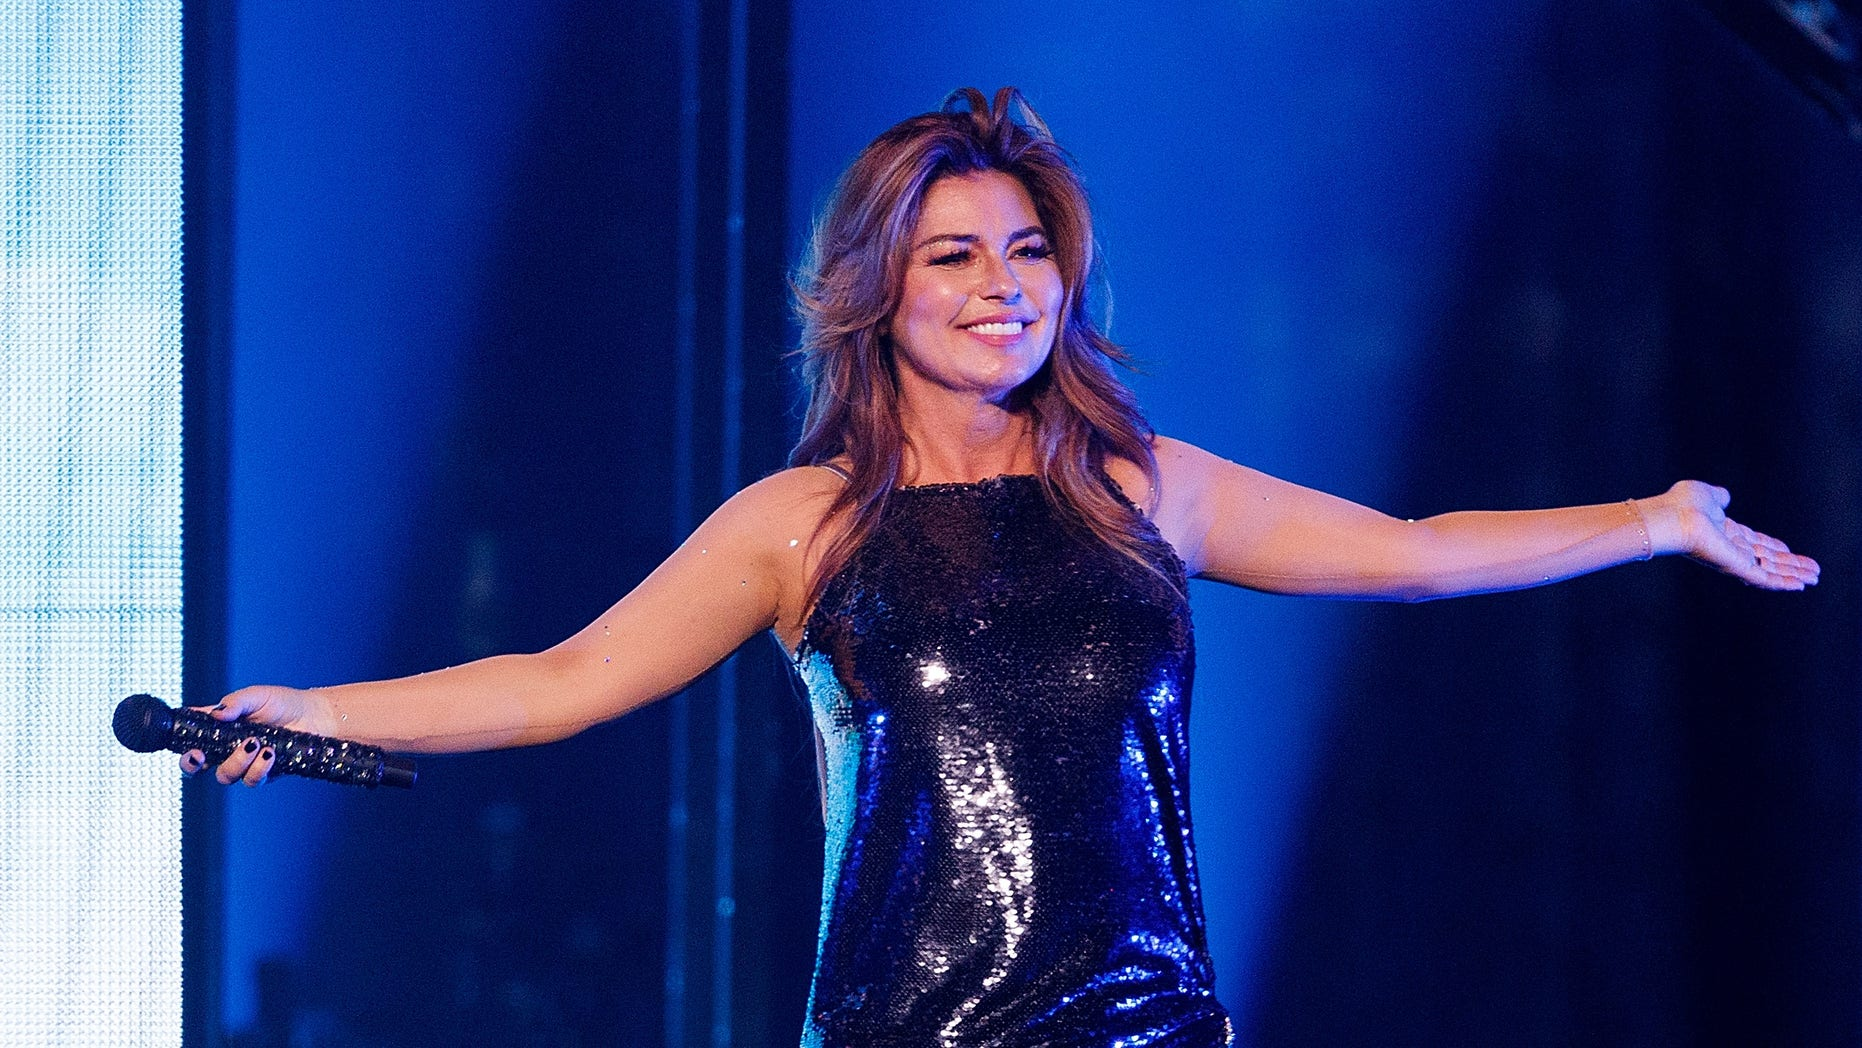 Shania Twain revealed that she frequently gets starstruck after all these years in show business.